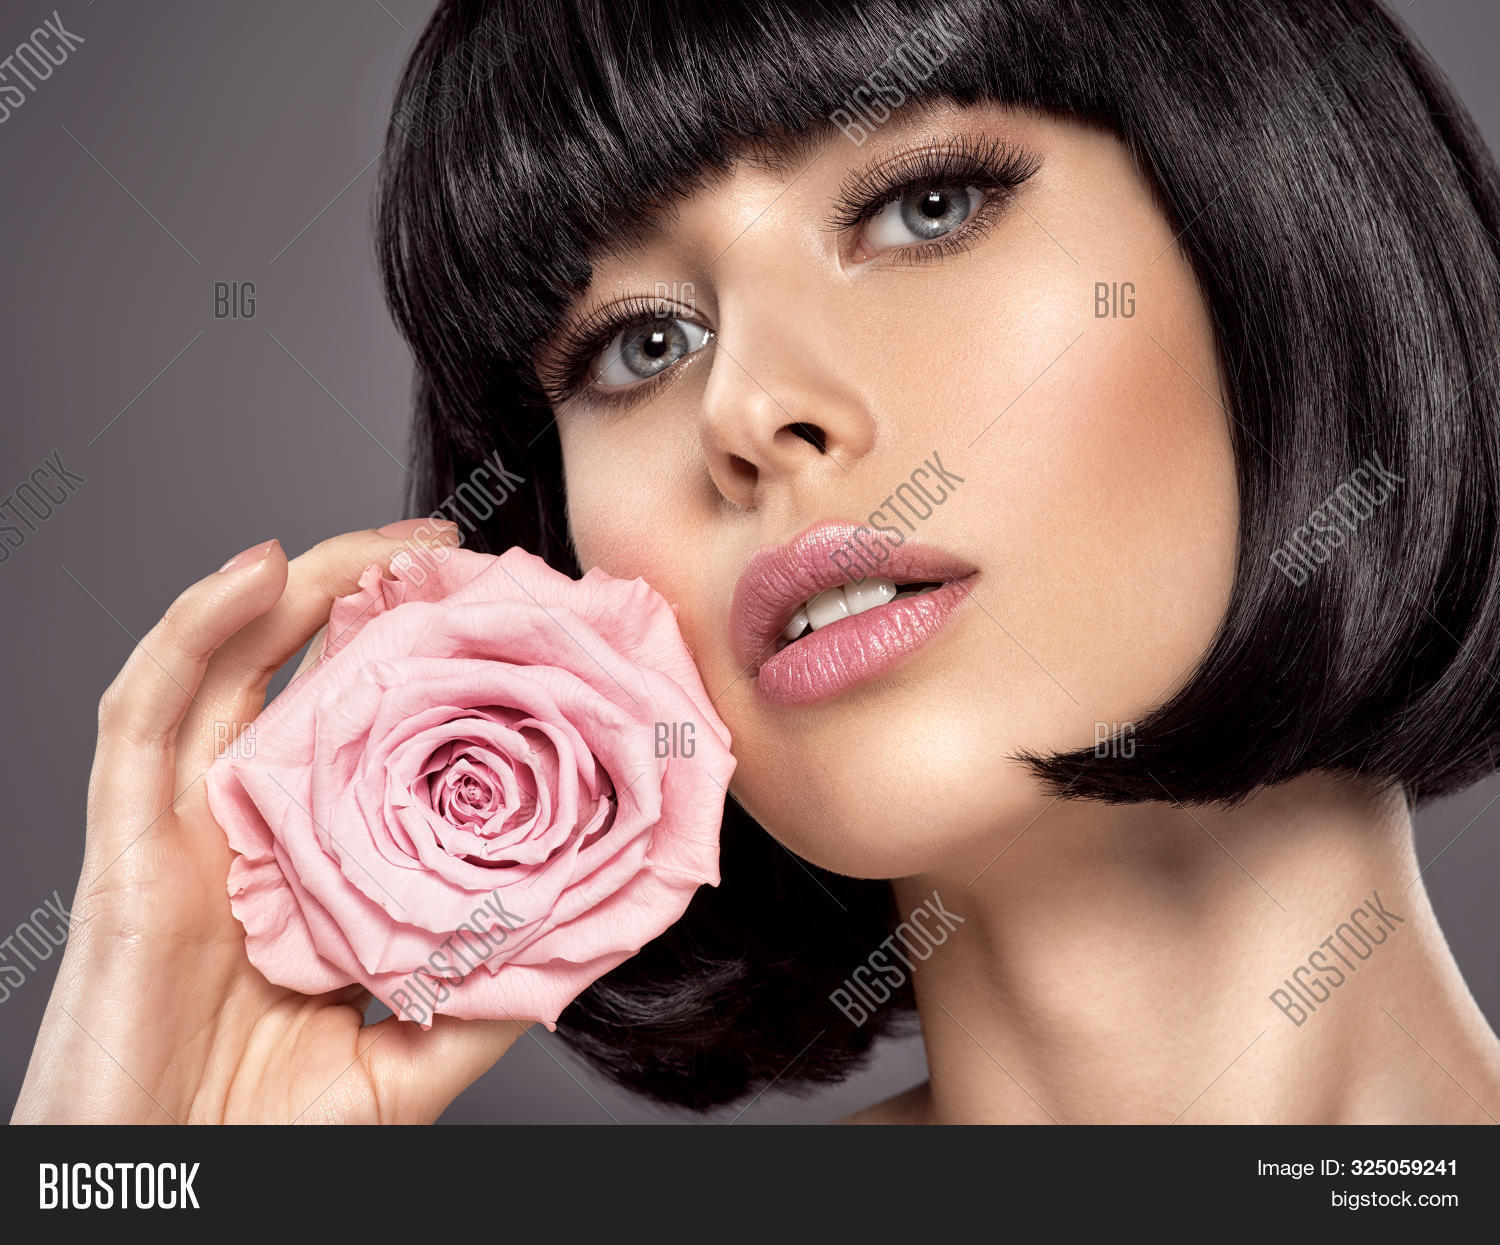 Woman with beauty short black hair holding rose flower. Fashion model with  straight hair. Fashion m